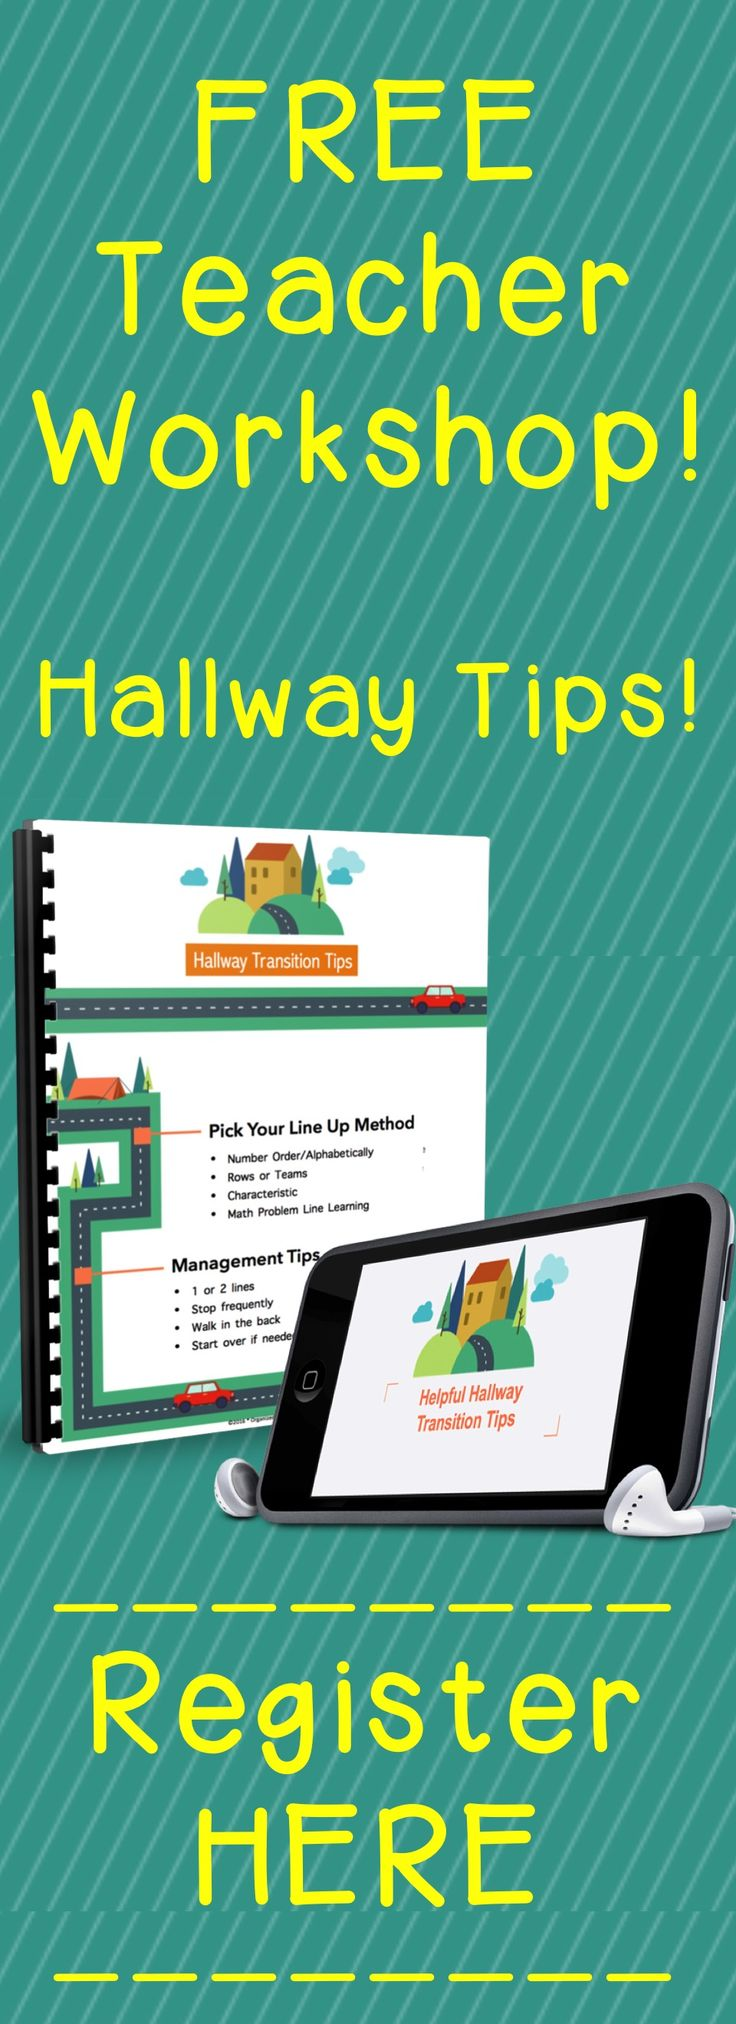 Brand new FREE teacher workshop: Helpful Hallway Transition Tips! This 20-minute presentation will give you some ideas for the best ways to line up students, management suggestions while in the hallway, and even 10 activities while walking and/or waiting quietly. Includes a free Cheat Sheet to download and take too! Click the pin to register now!